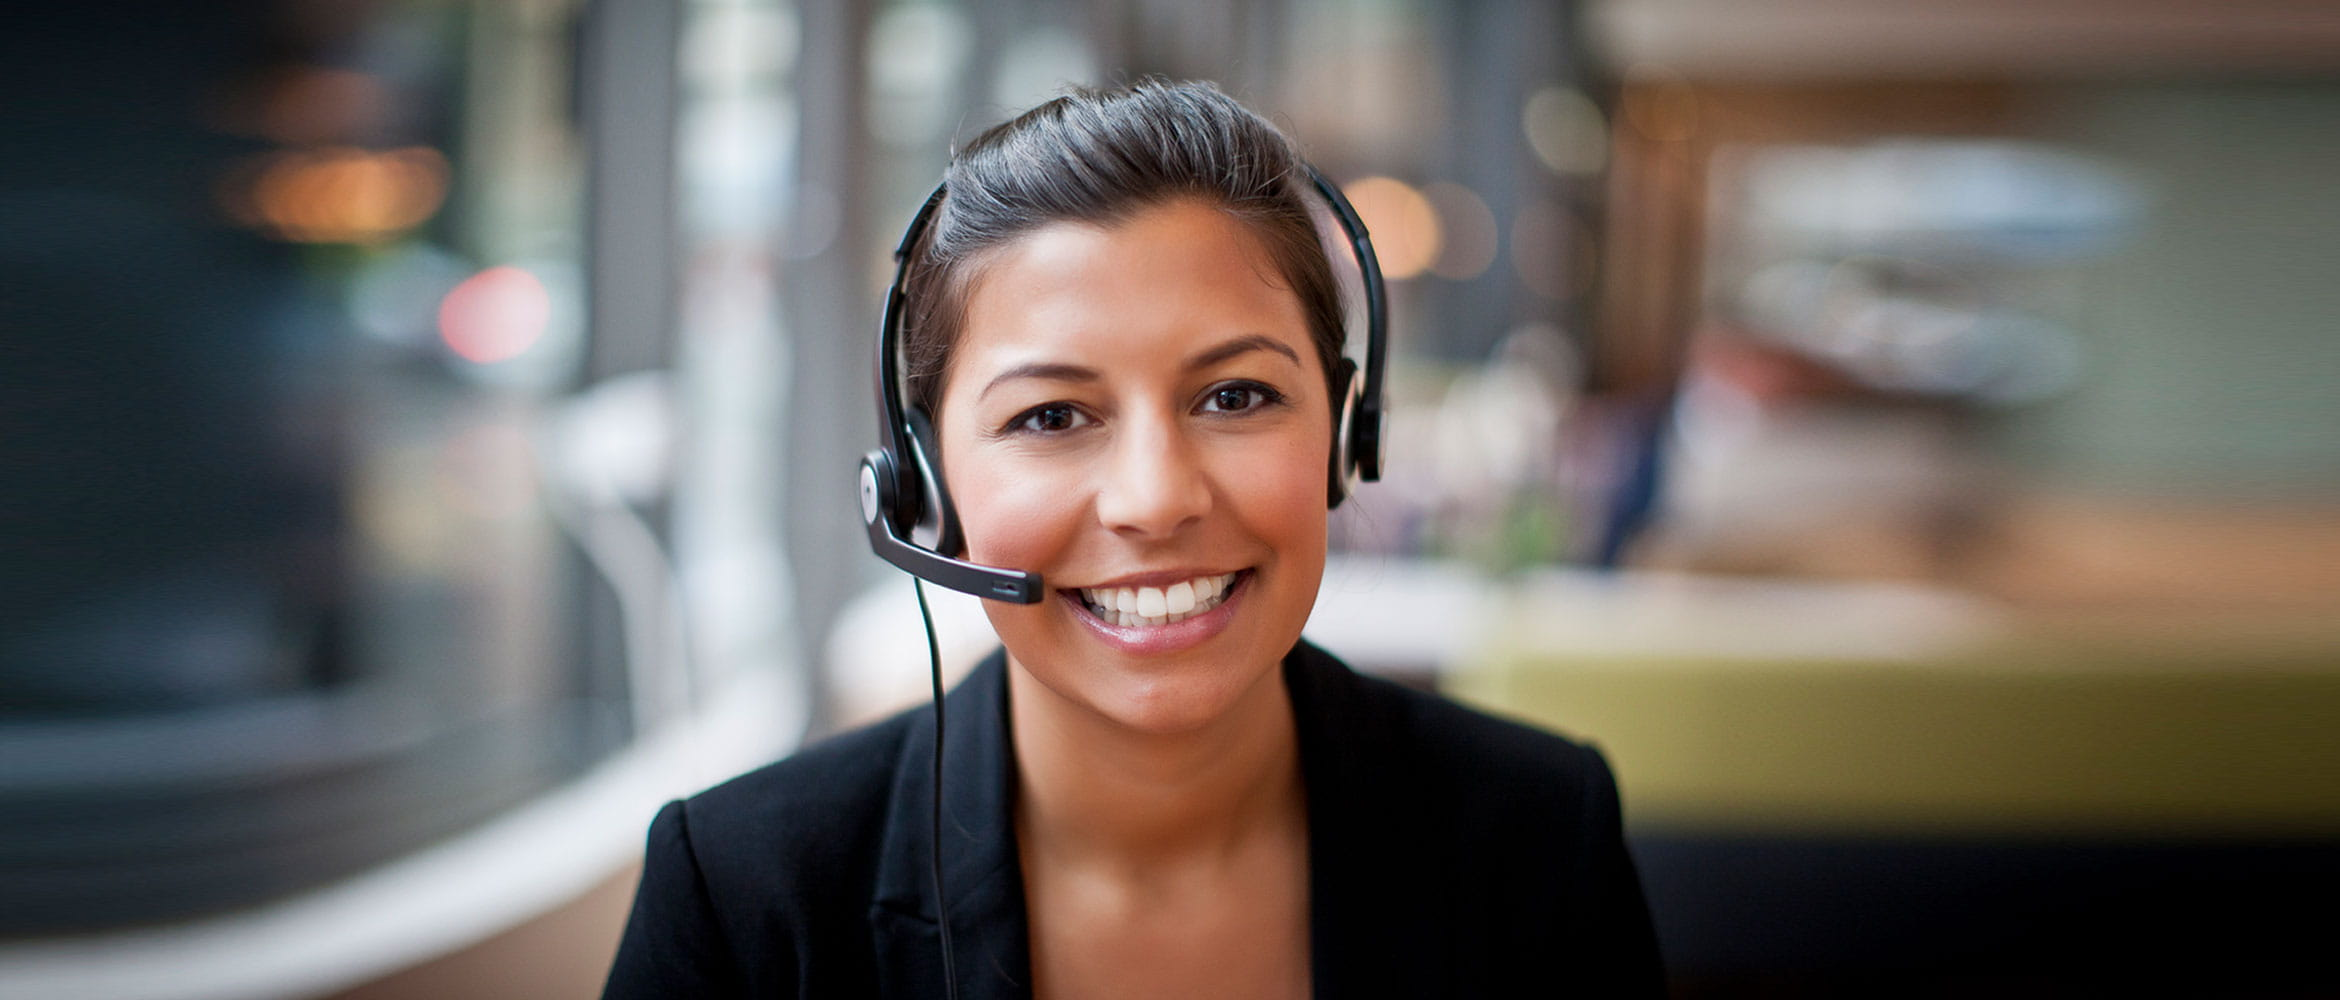 Smiling lady wearing a hands free headset looks at the camera